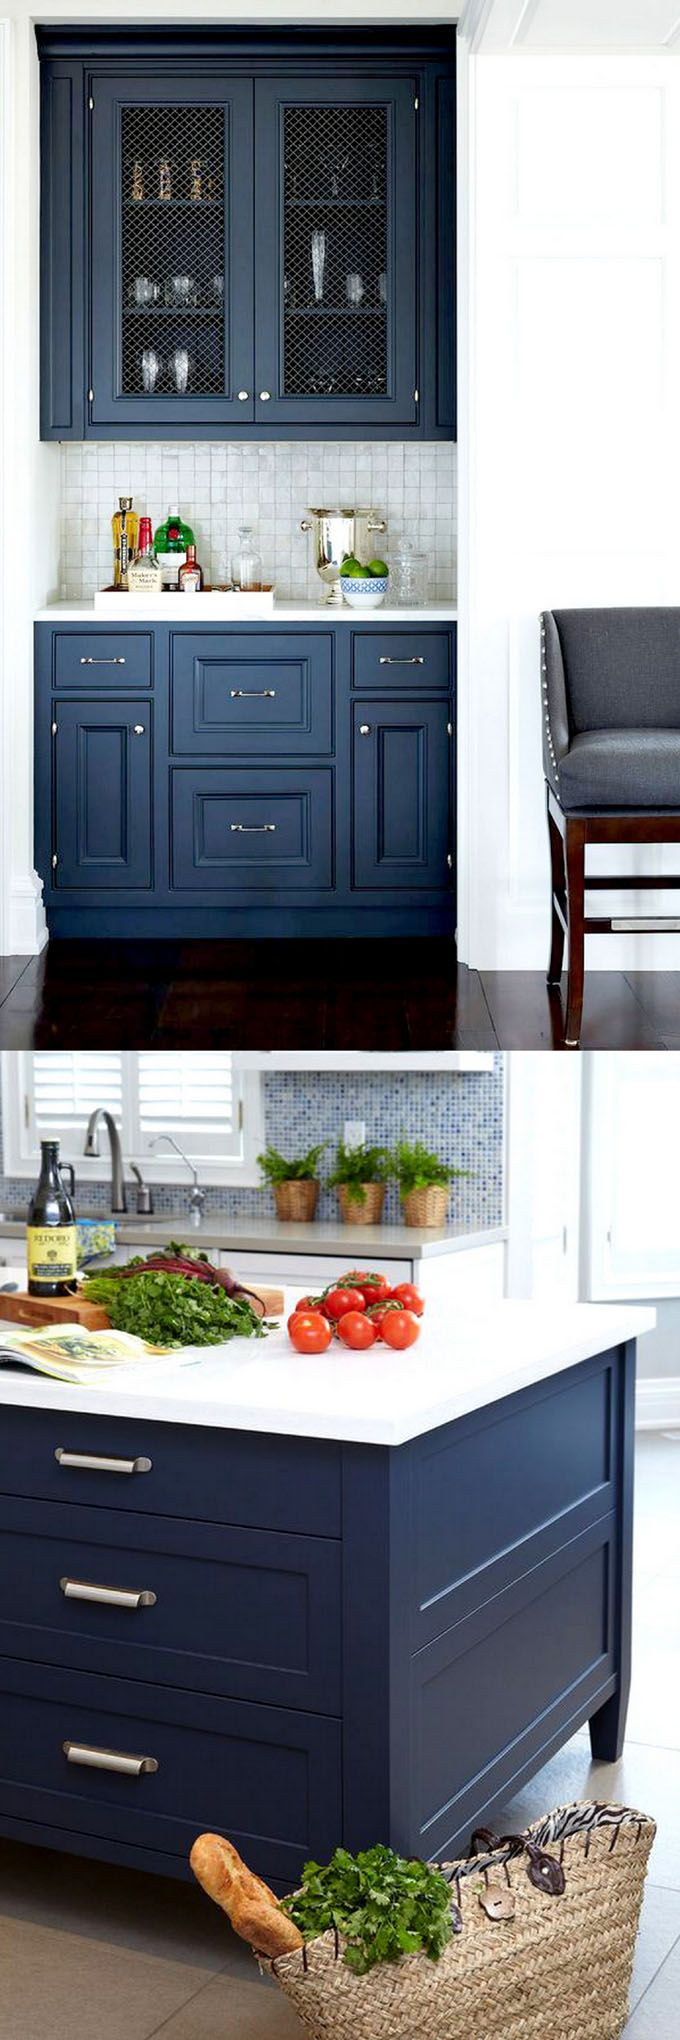 Bm Raccoon Blue & Hale Navy-25 Gorgeous Paint Colors for Kitchen Cabinets (and beyond) - Page 4 of 4 - A Piece Of Rainbow